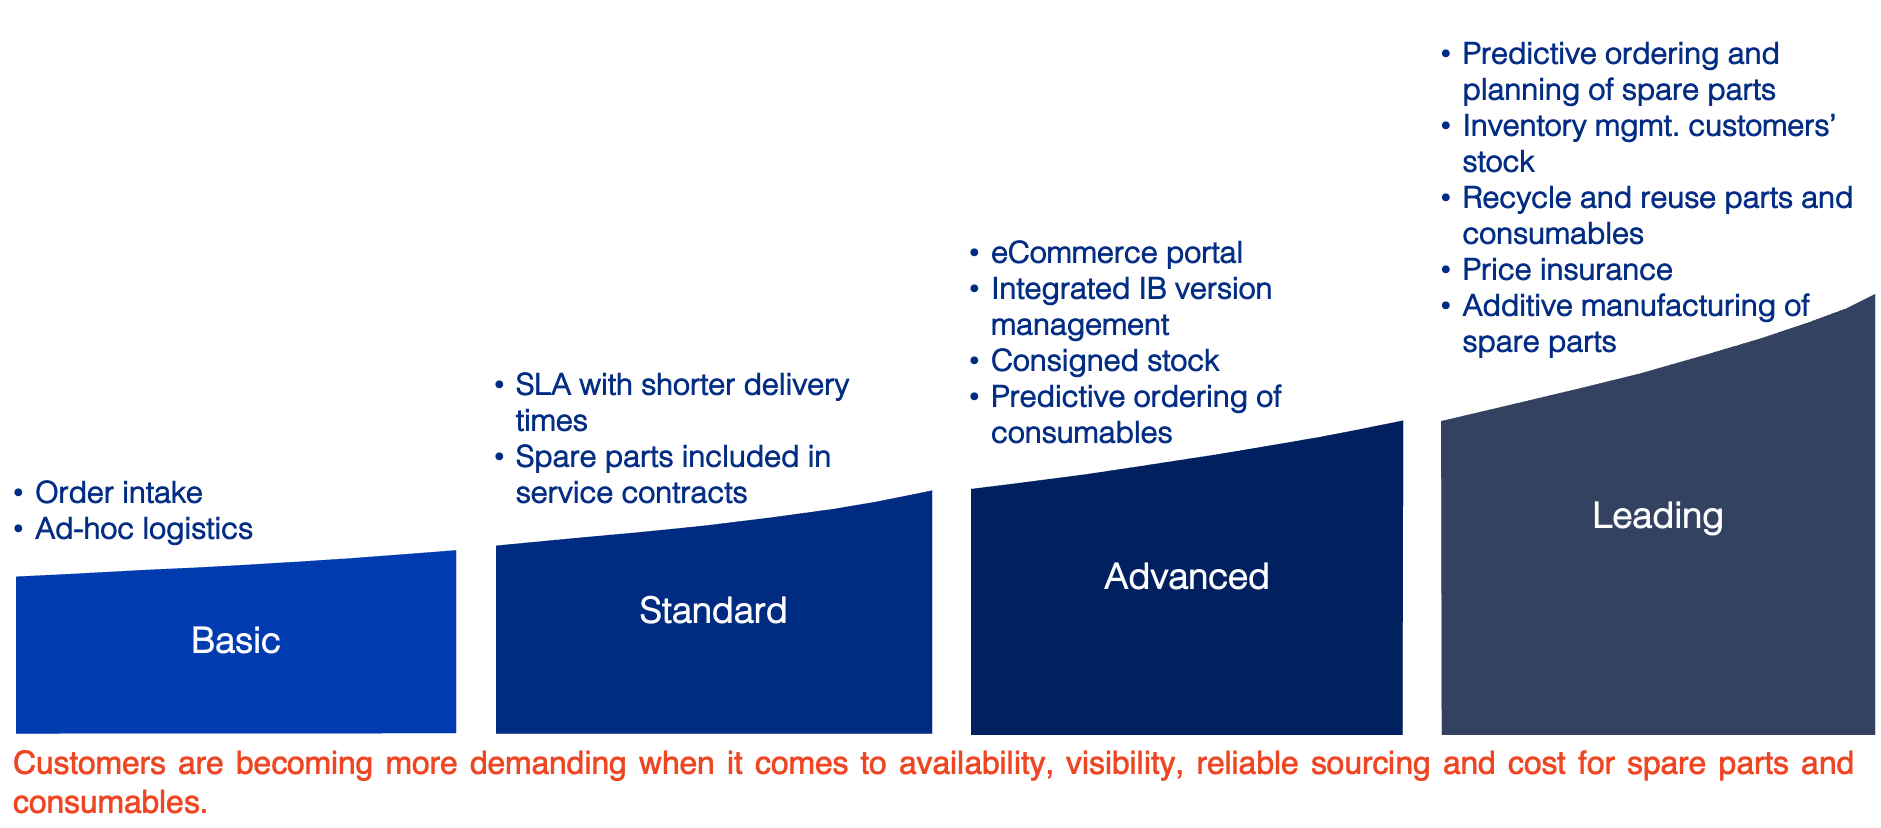 Continuum of advanced business models for spare parts and consumables